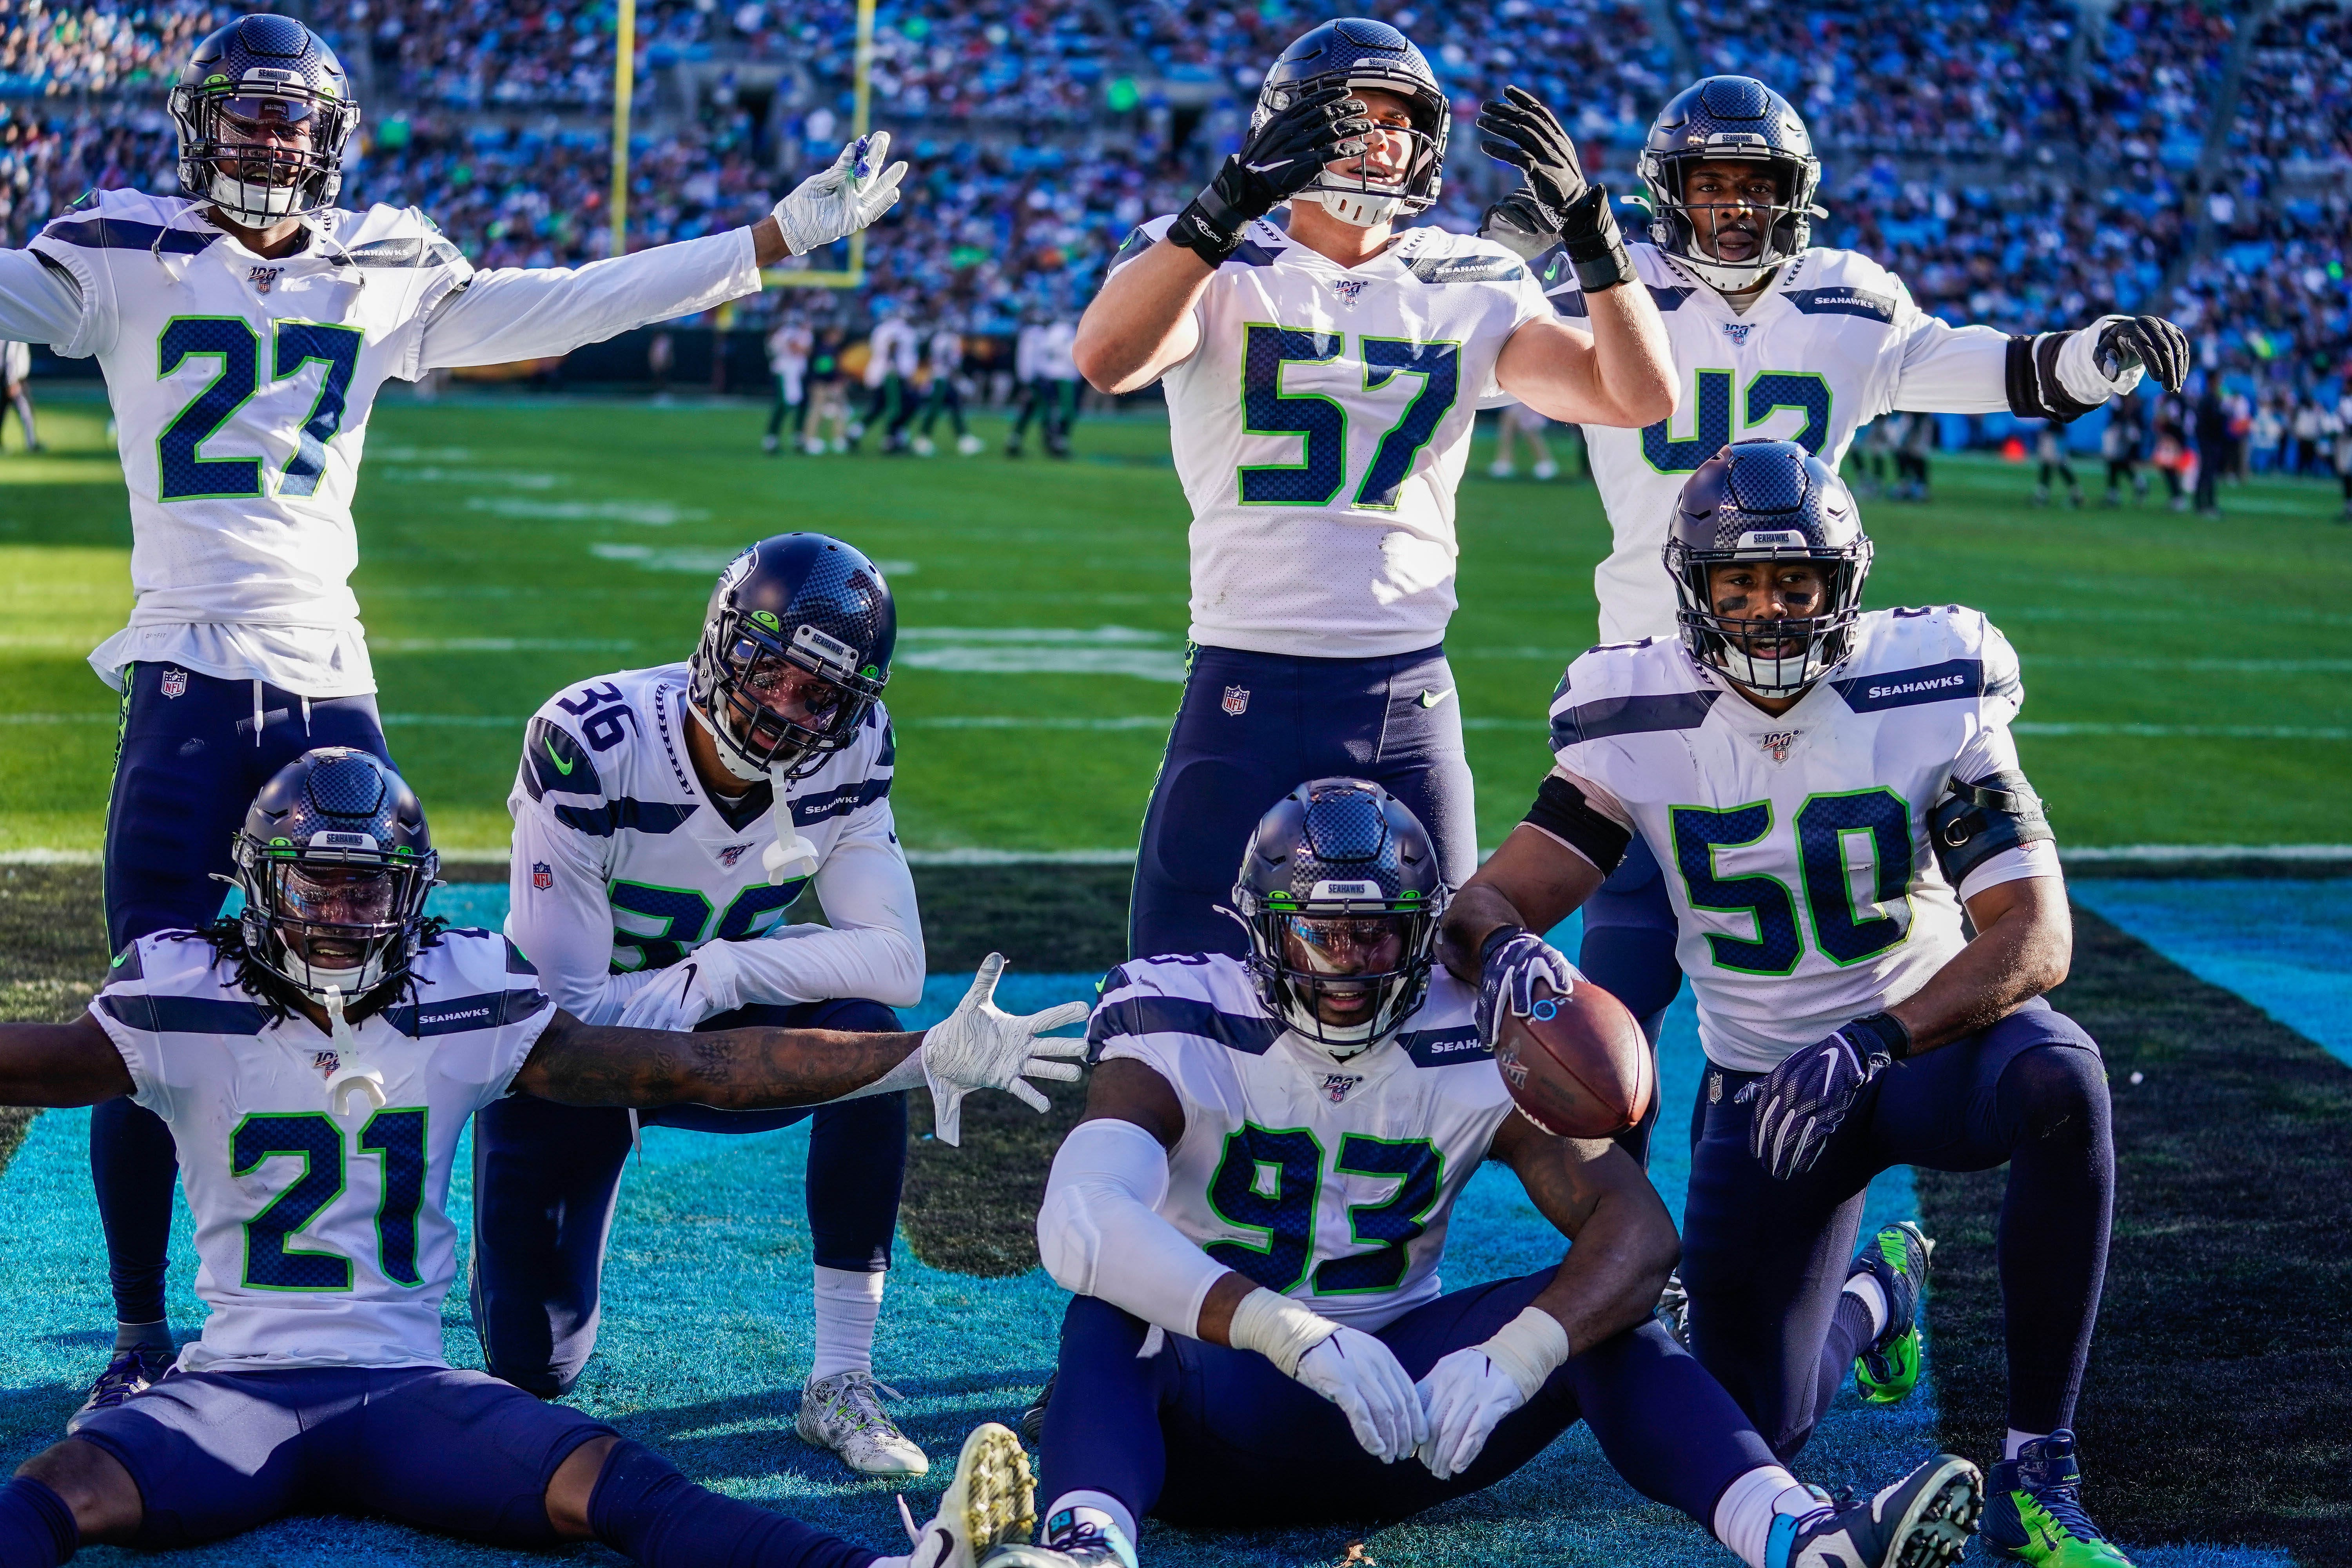 NFL playoff picture after Week 15: Big shakeup as 49ers, Seahawks, Packers, Bills and Patriots clinch postseason spots